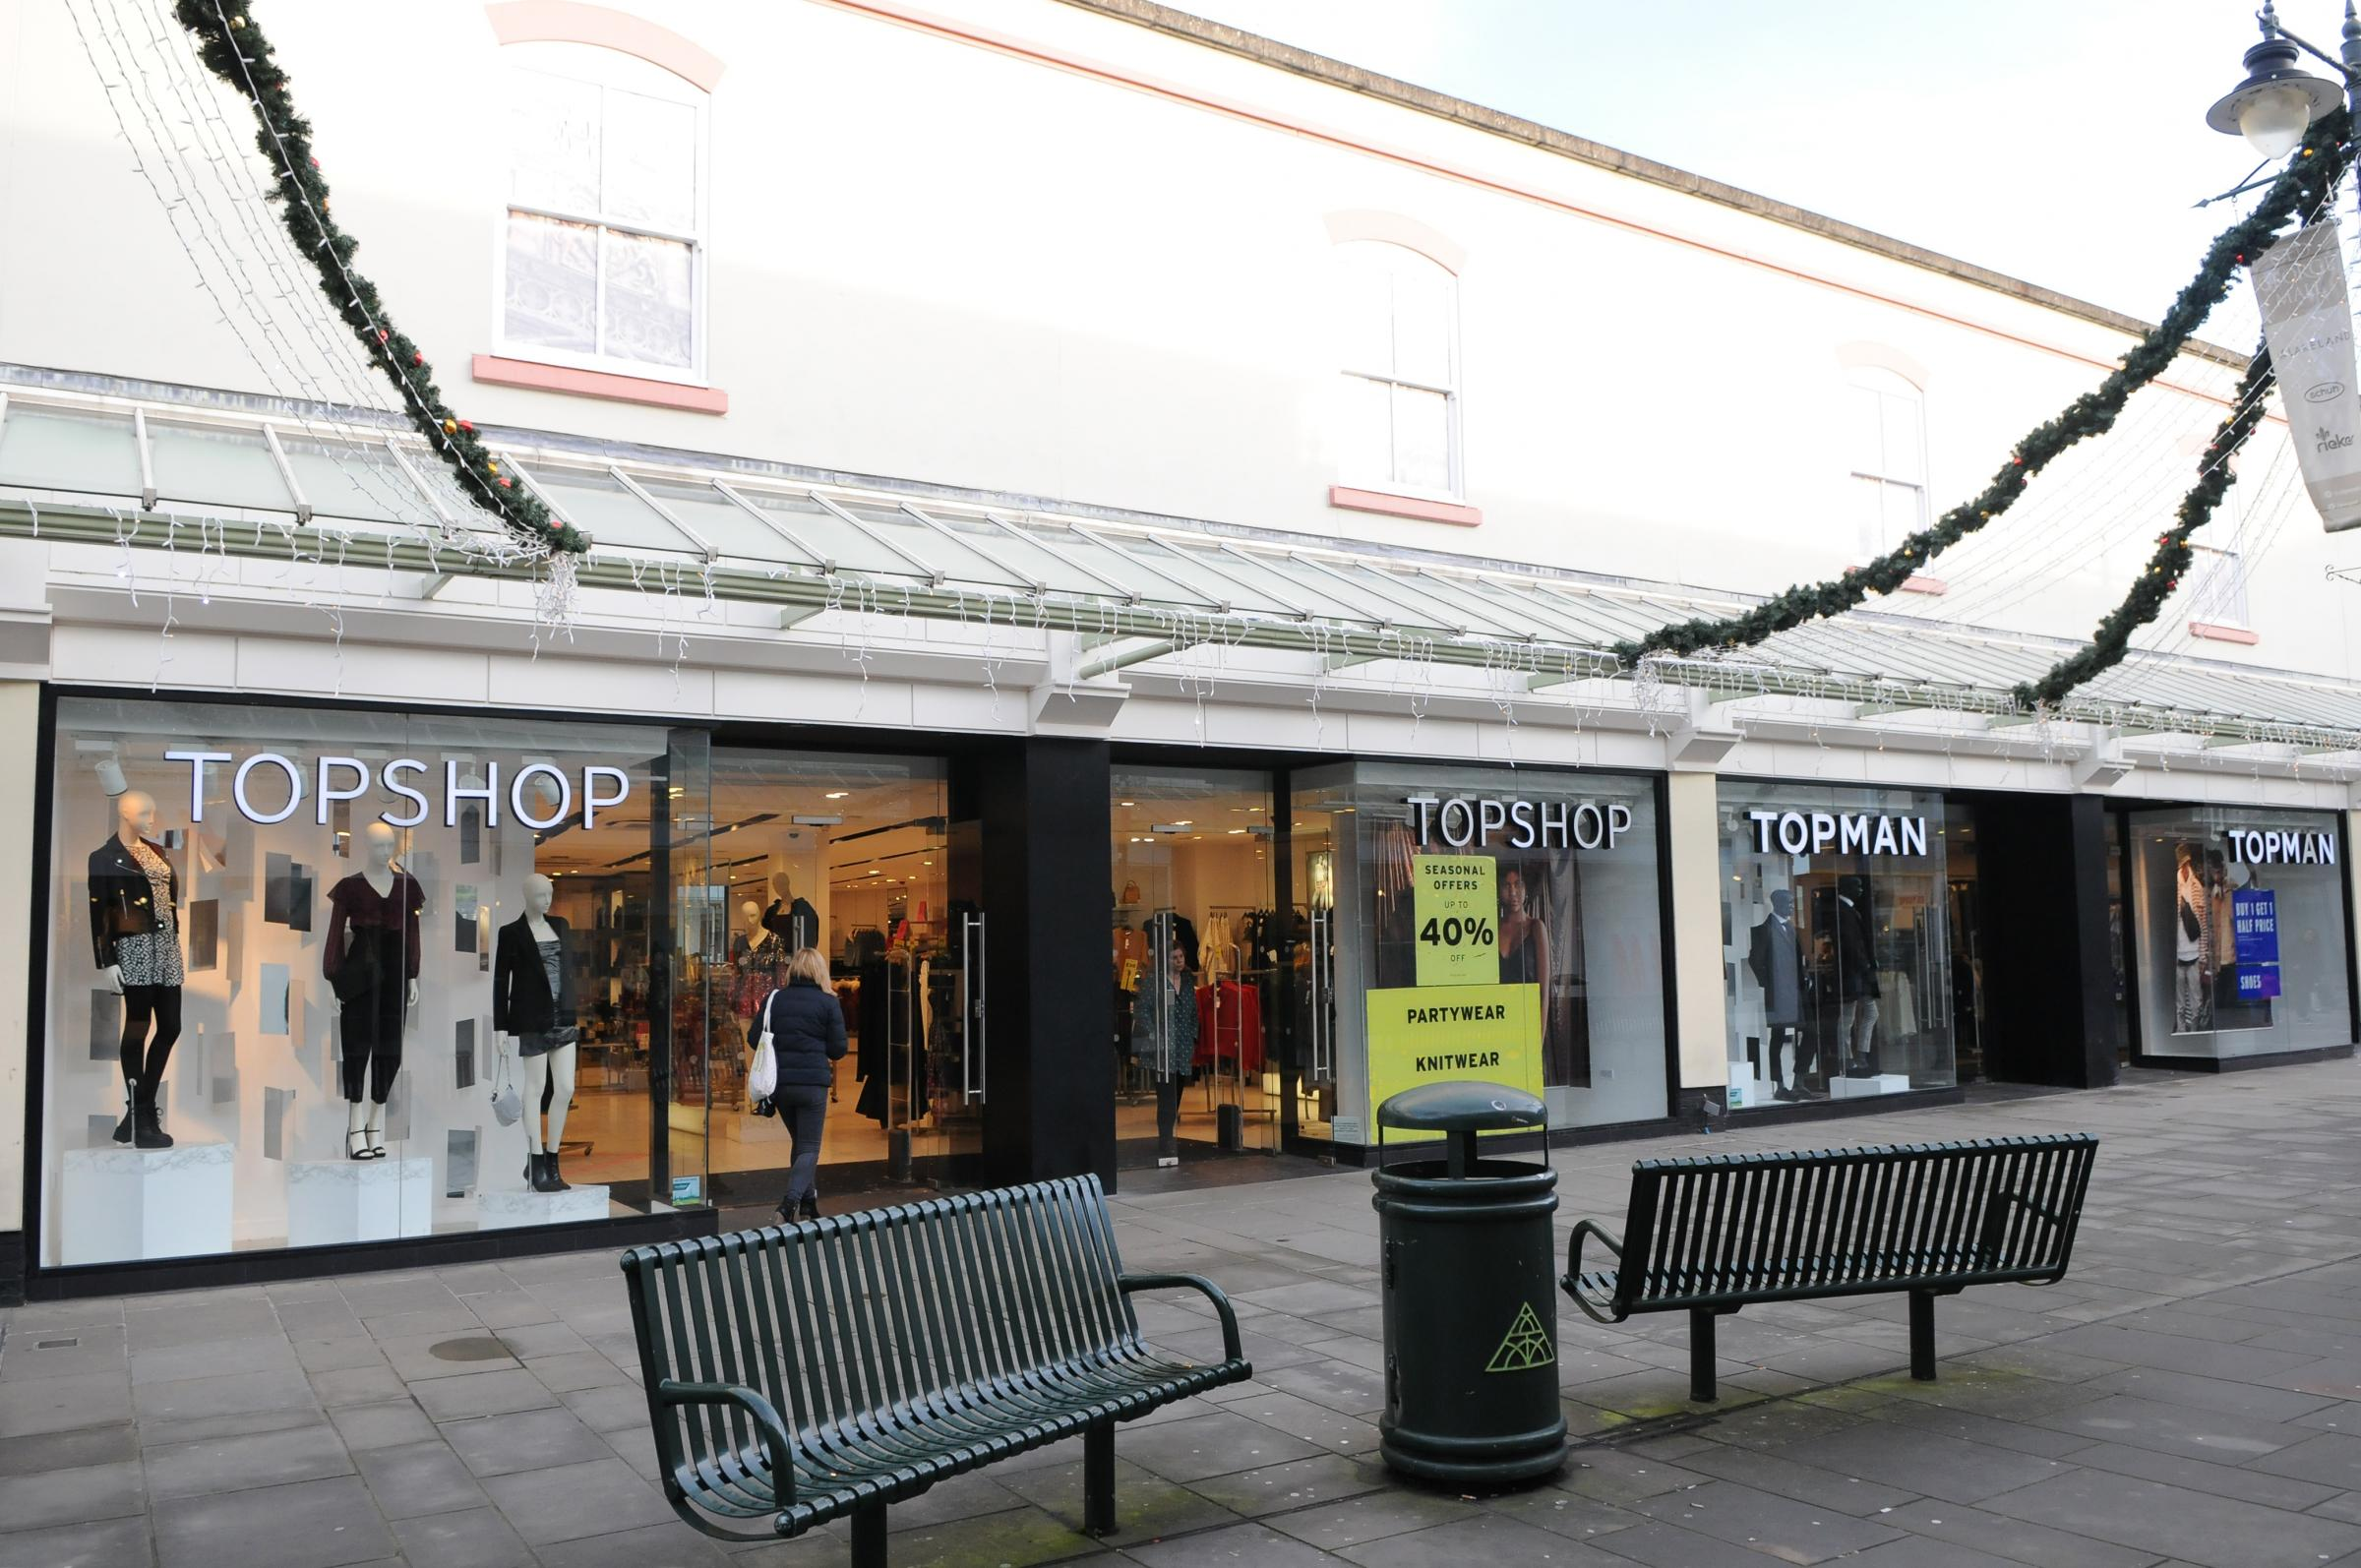 Topshop and Topman in Salisbury saved from closure